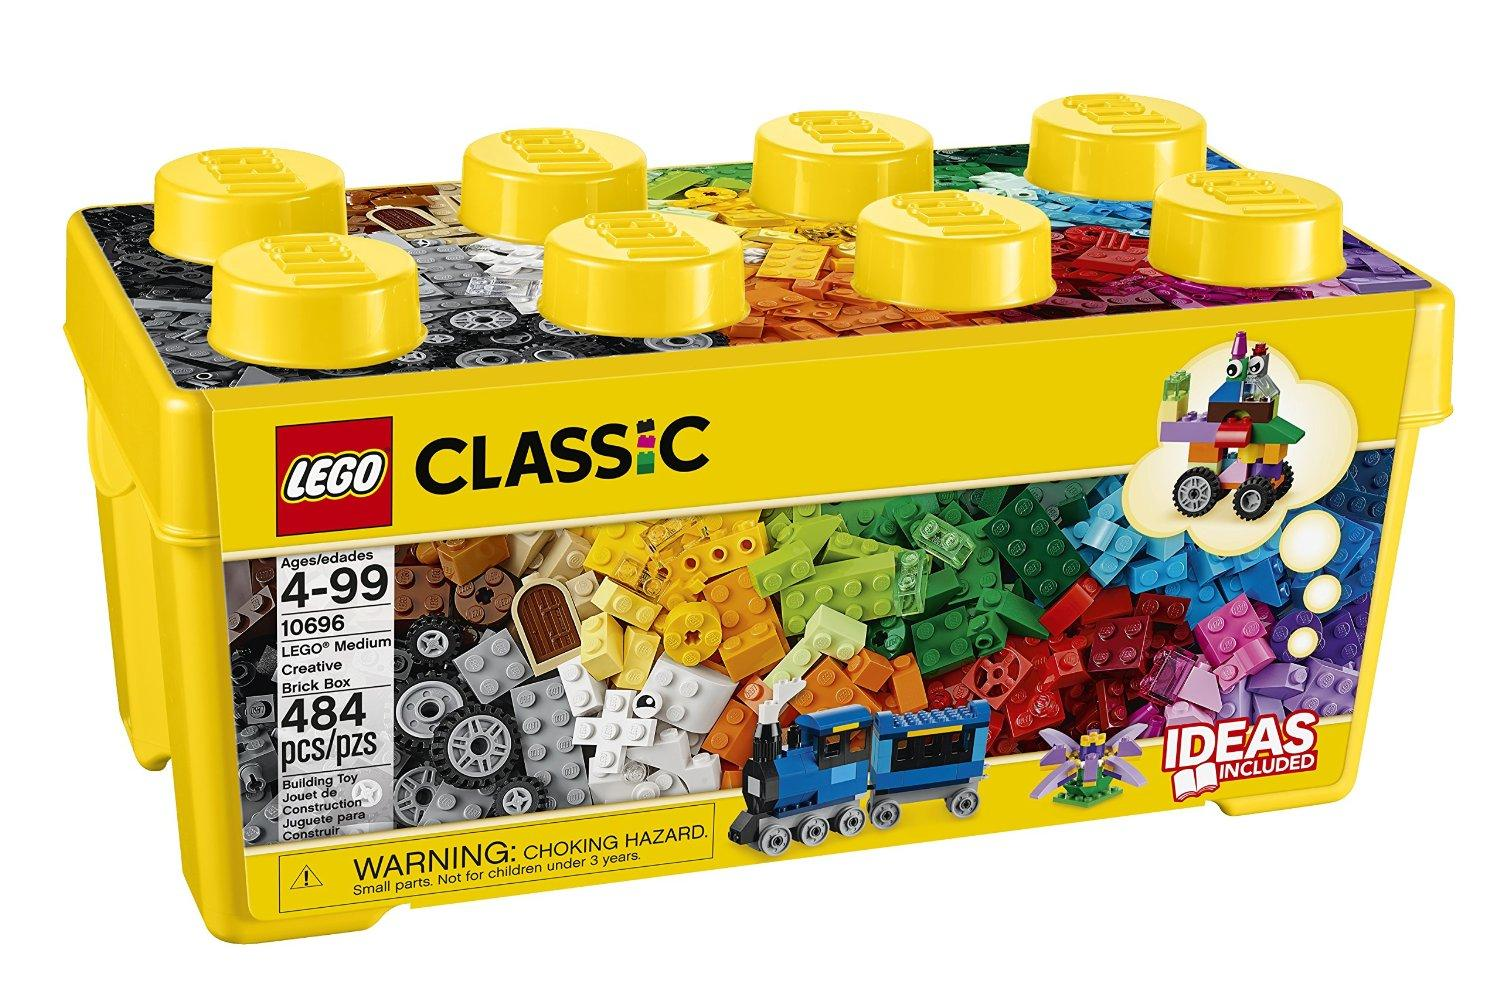 $28.97 LEGO Classic Medium Creative Brick Box @ Amazon